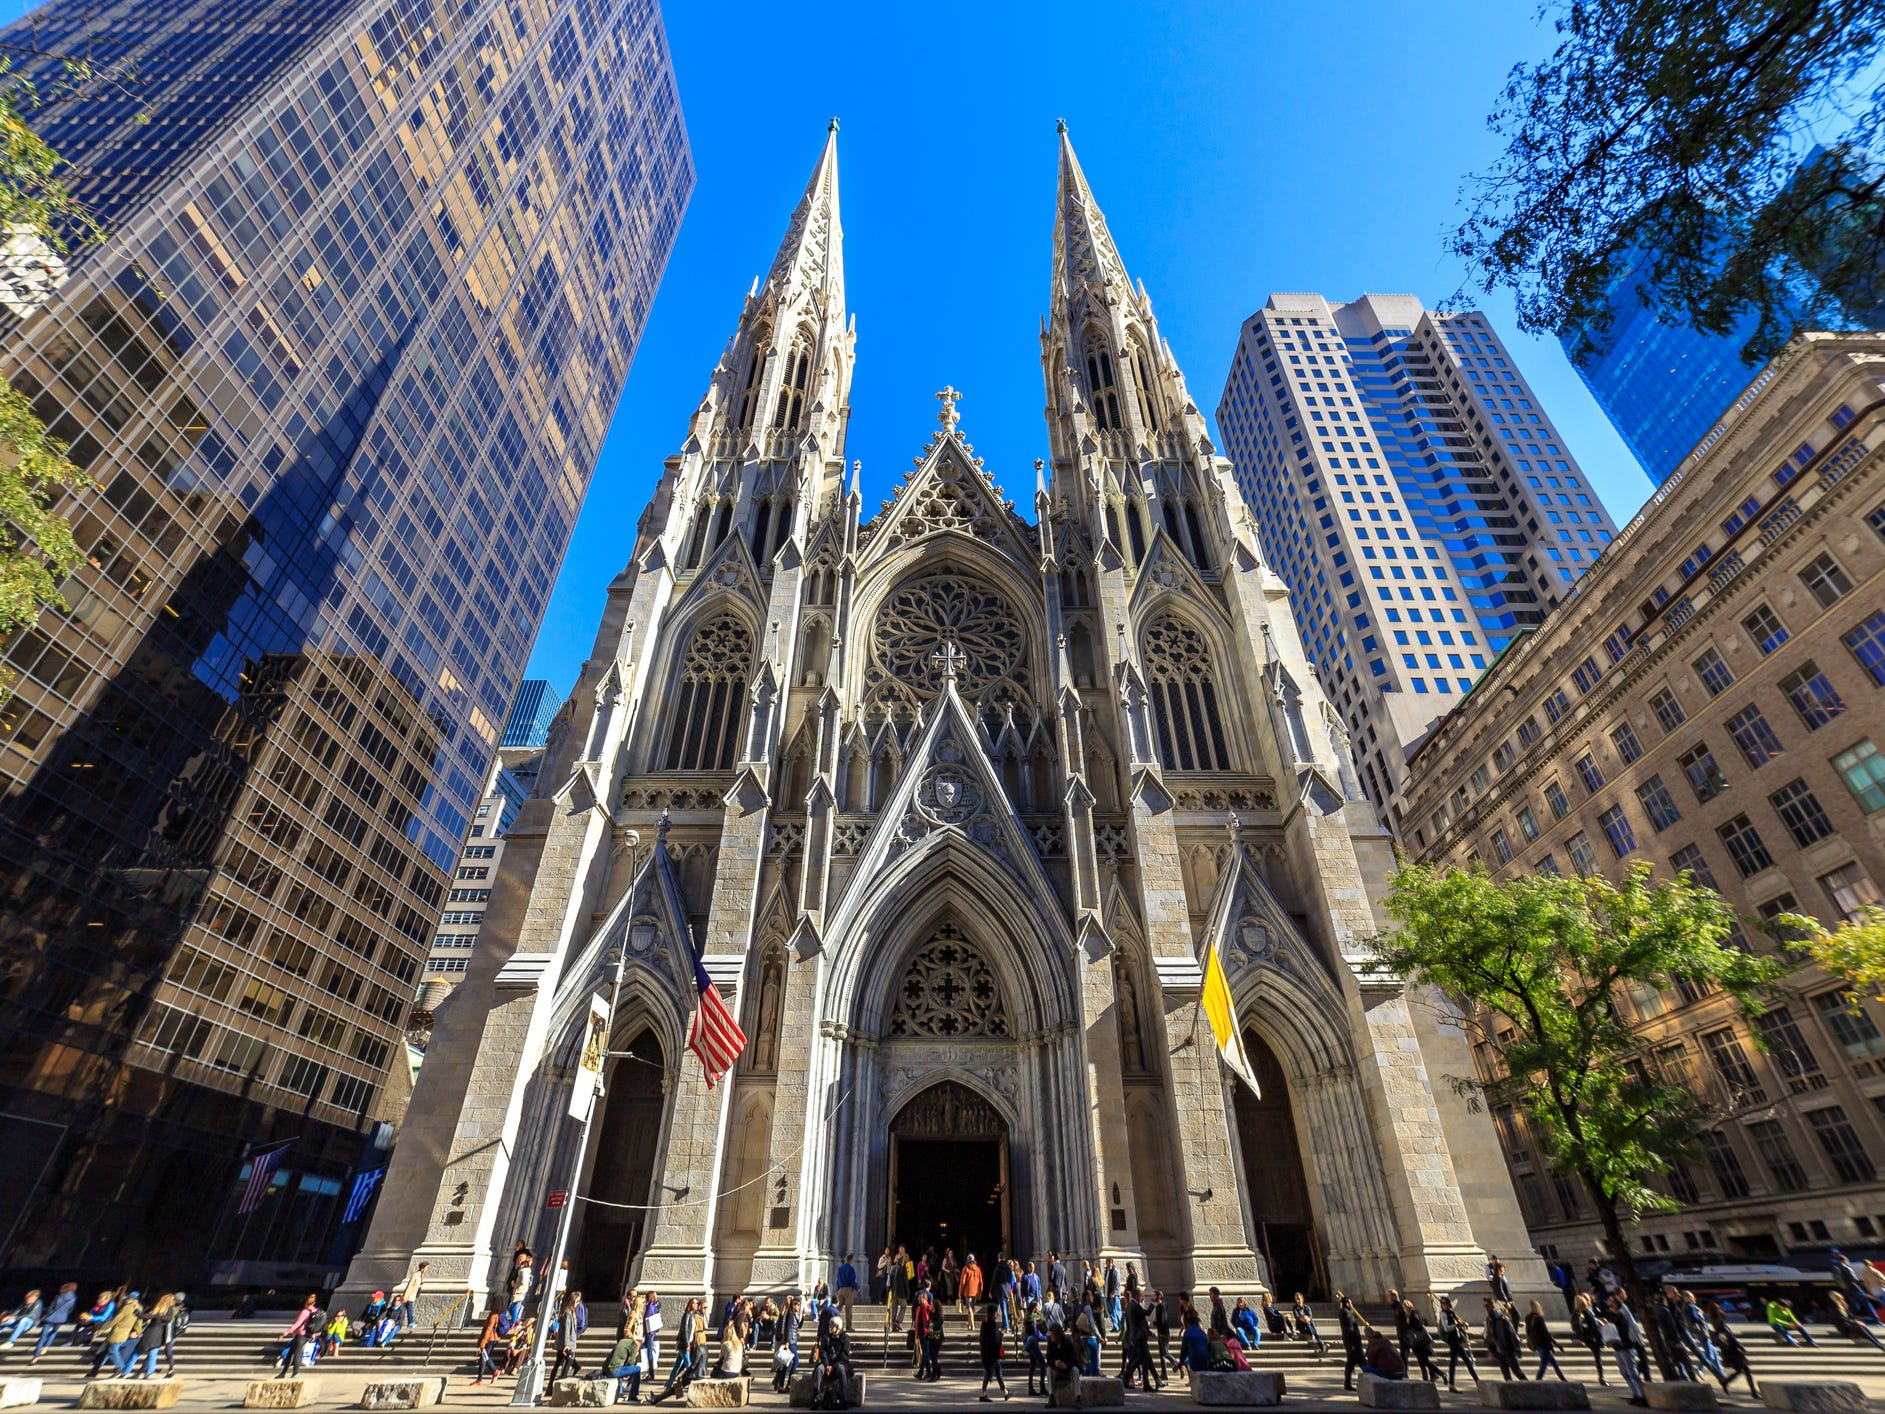 New Jersey man arrested after bringing gas cans into St. Patrick's Cathedral, police say